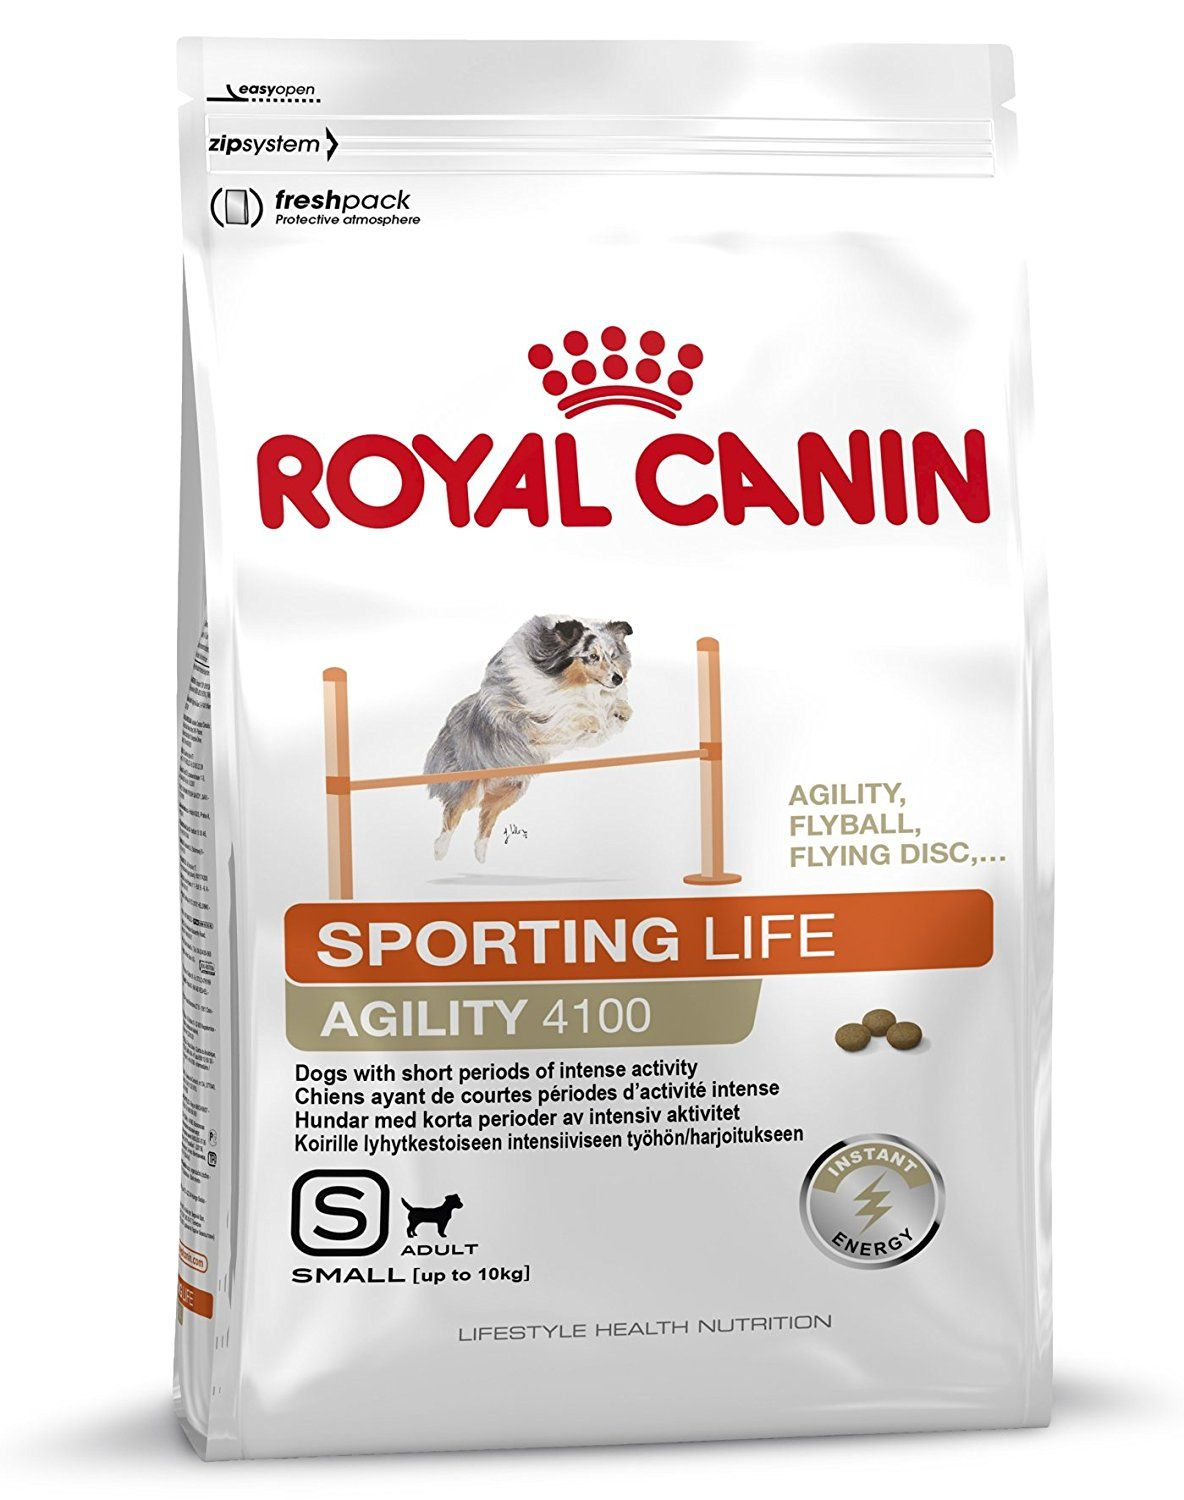 Royal Canin Sporting Life Agility 4100 Small Breed Dog Food 1 5kg